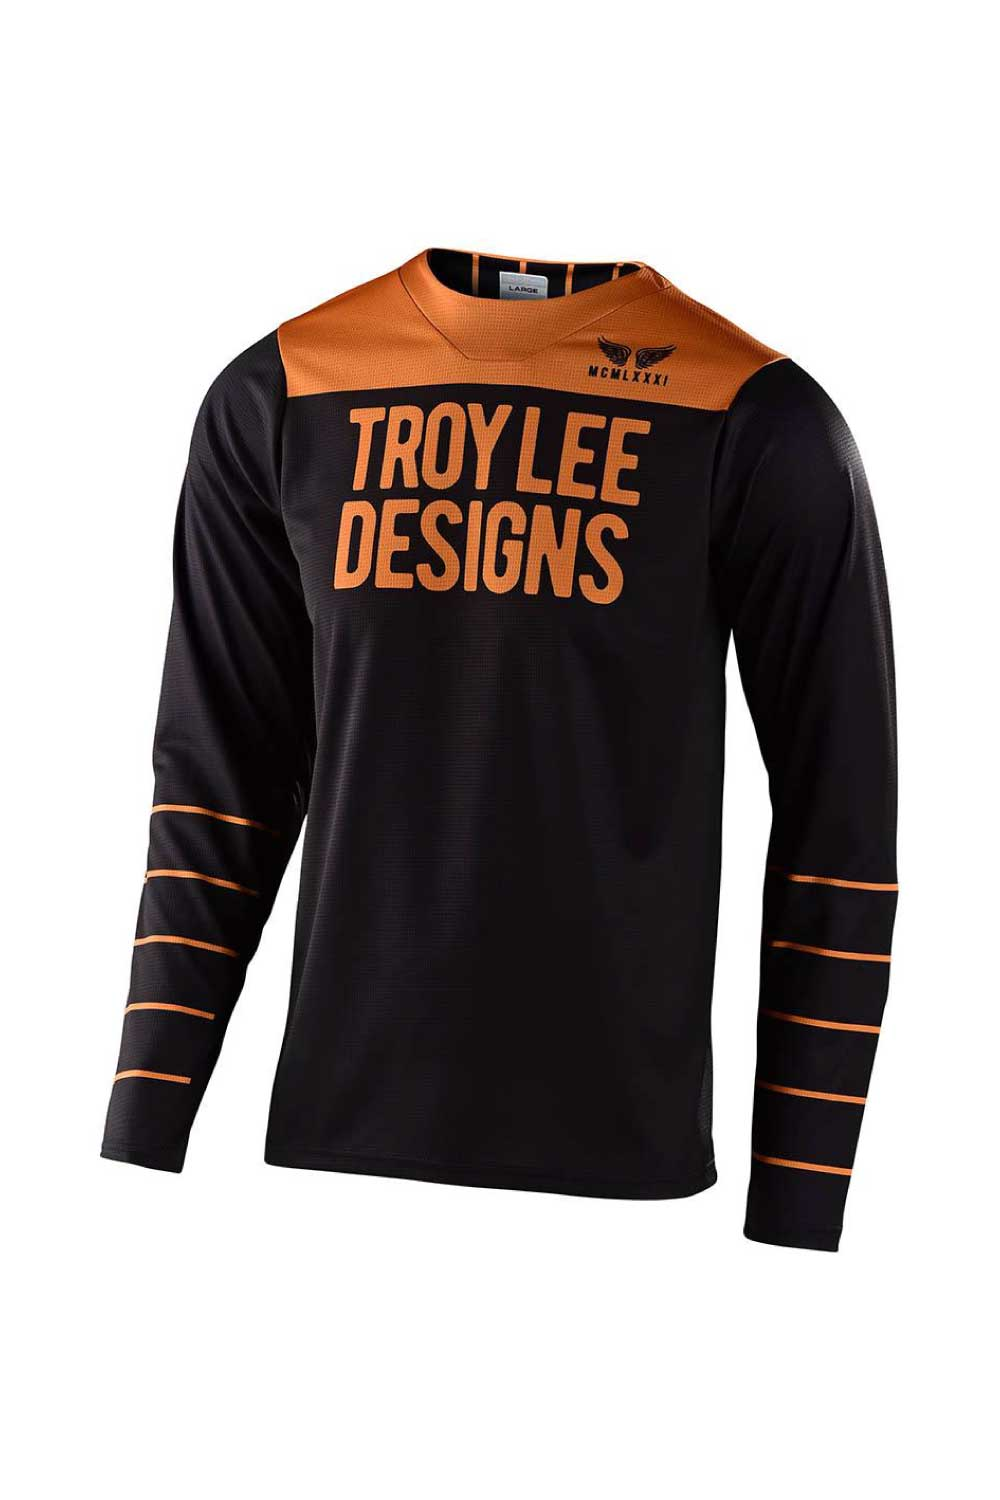 Troy Lee Designs 2020 Skyline Long Sleeve Mountain Bike Jersey